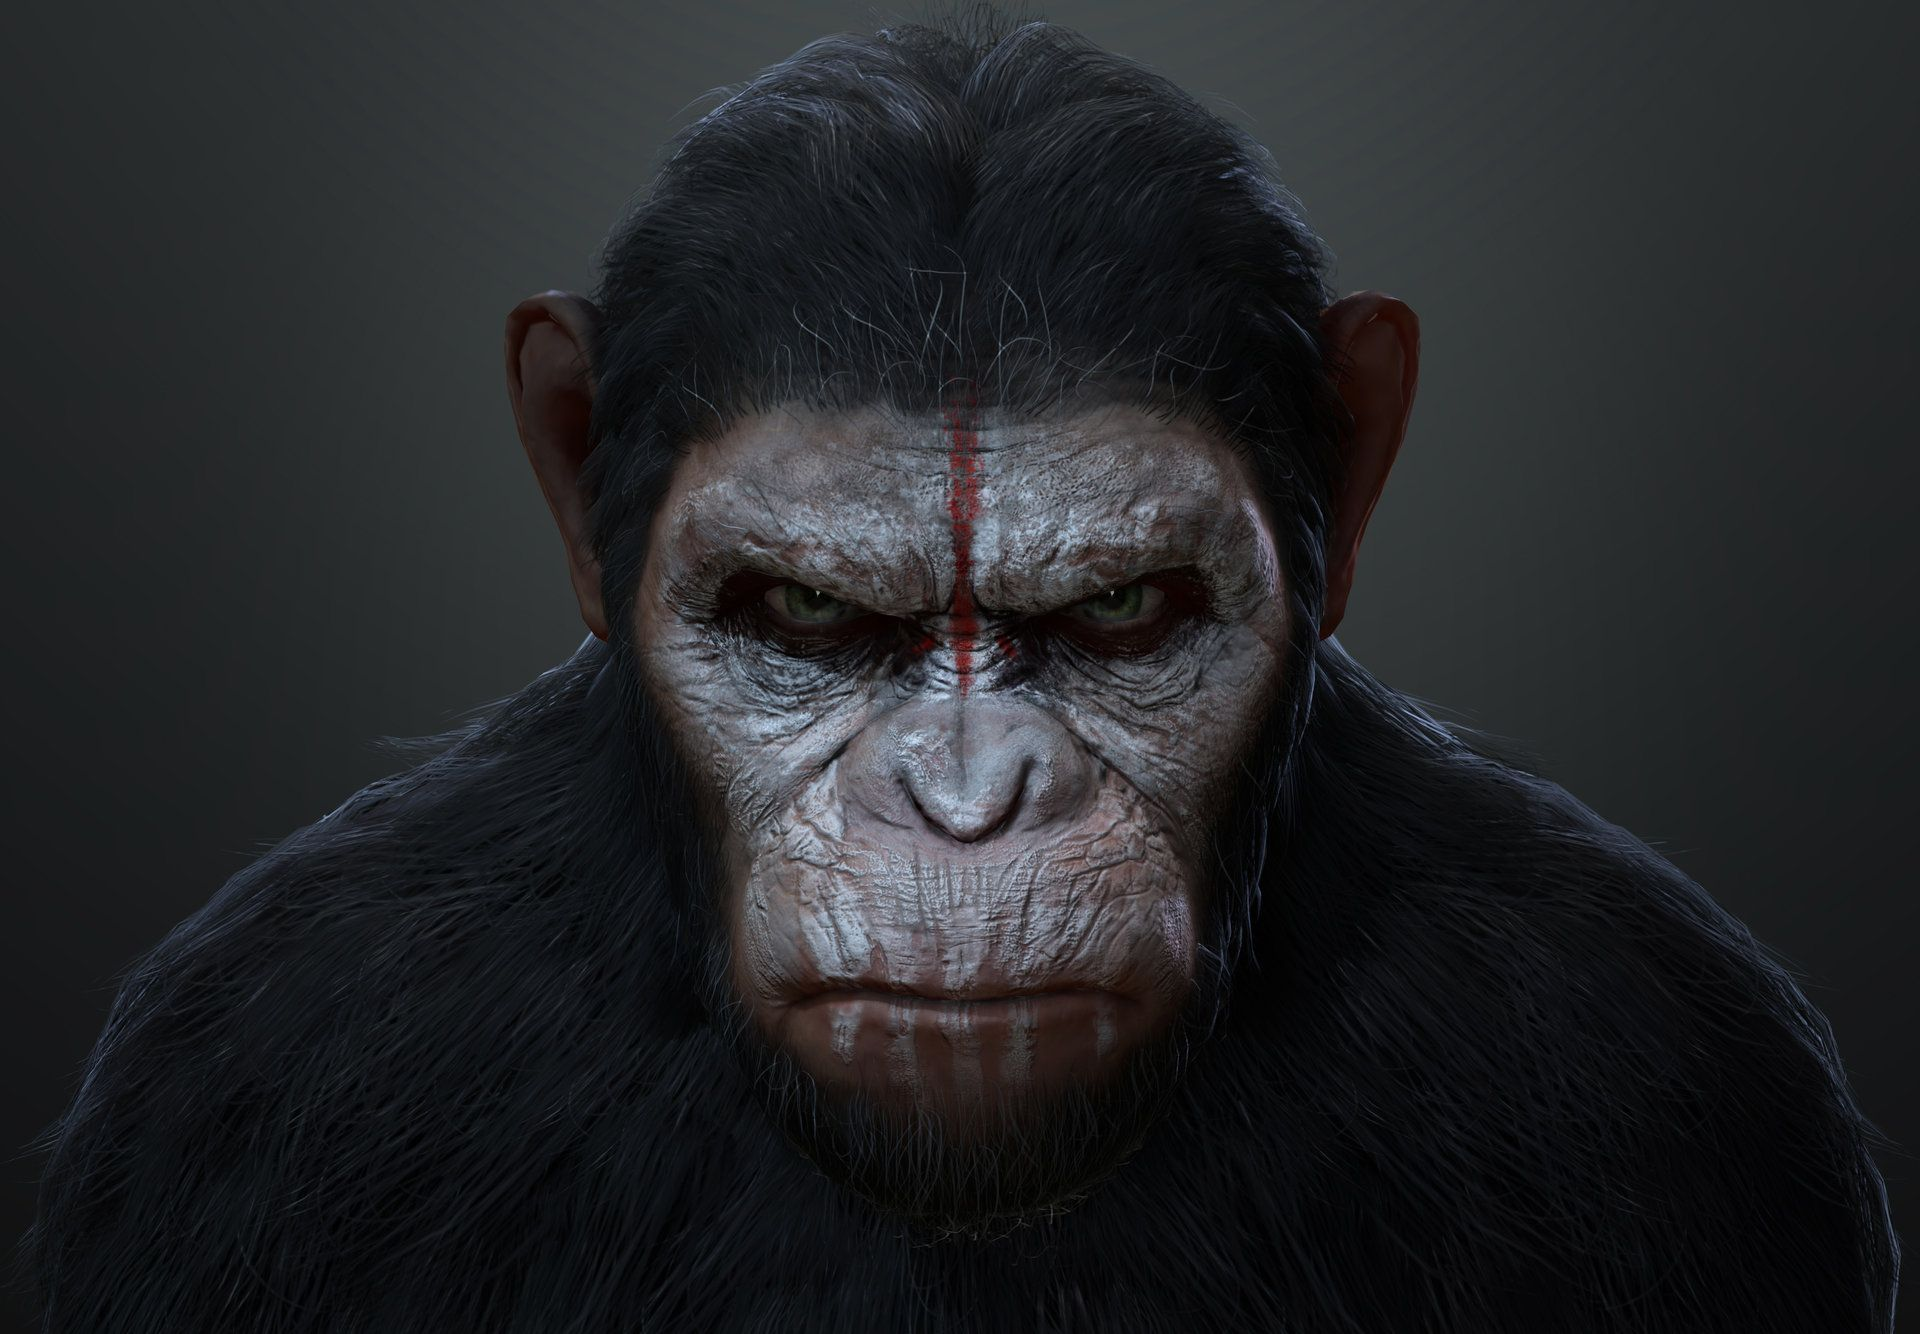 Artstation Dawn Of The Planet Of The Apes Fan Art Patrick Liow Planet Of The Apes Dawn Of The Planet Apes